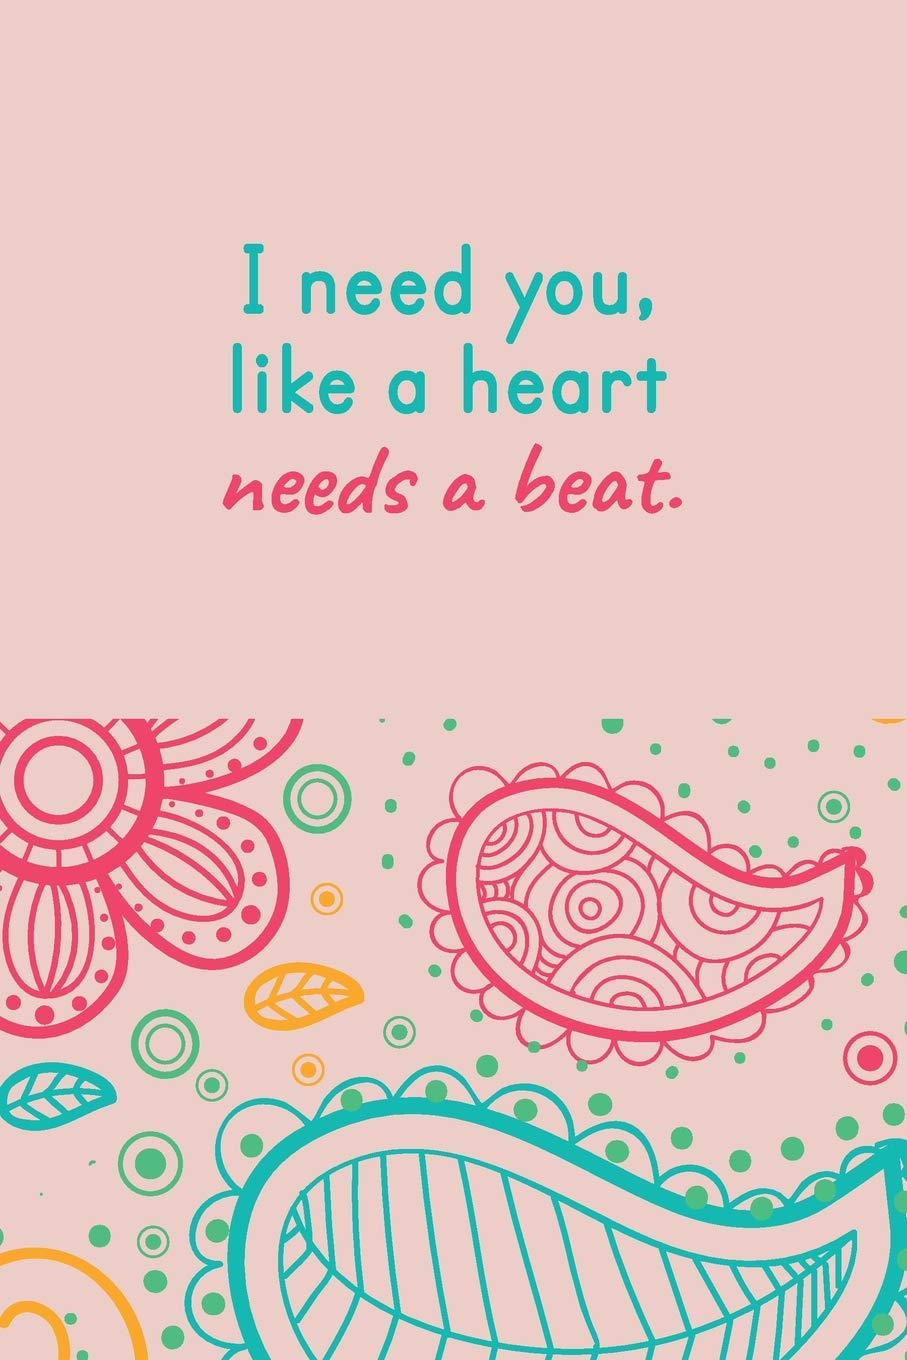 I Need You Like A Heart Needs A Beat Feeling Love Quotes Journal Strong Love Quotes Daily Gratitude Love Pink Diary Light Humor Quote Gift Idea Beautiful